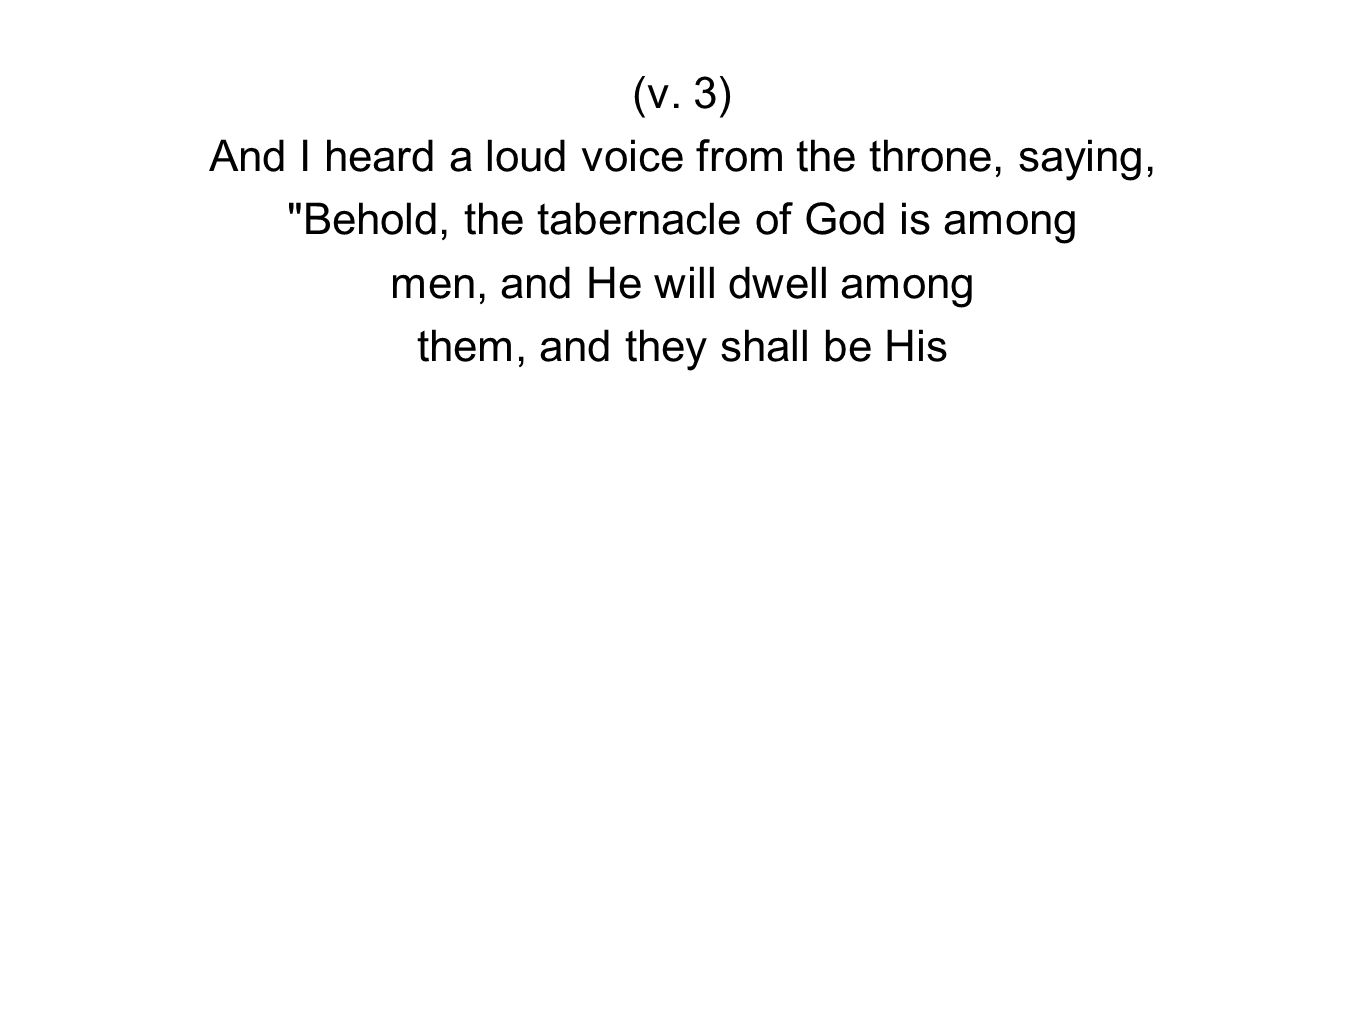 (v. 3) And I heard a loud voice from the throne, saying,